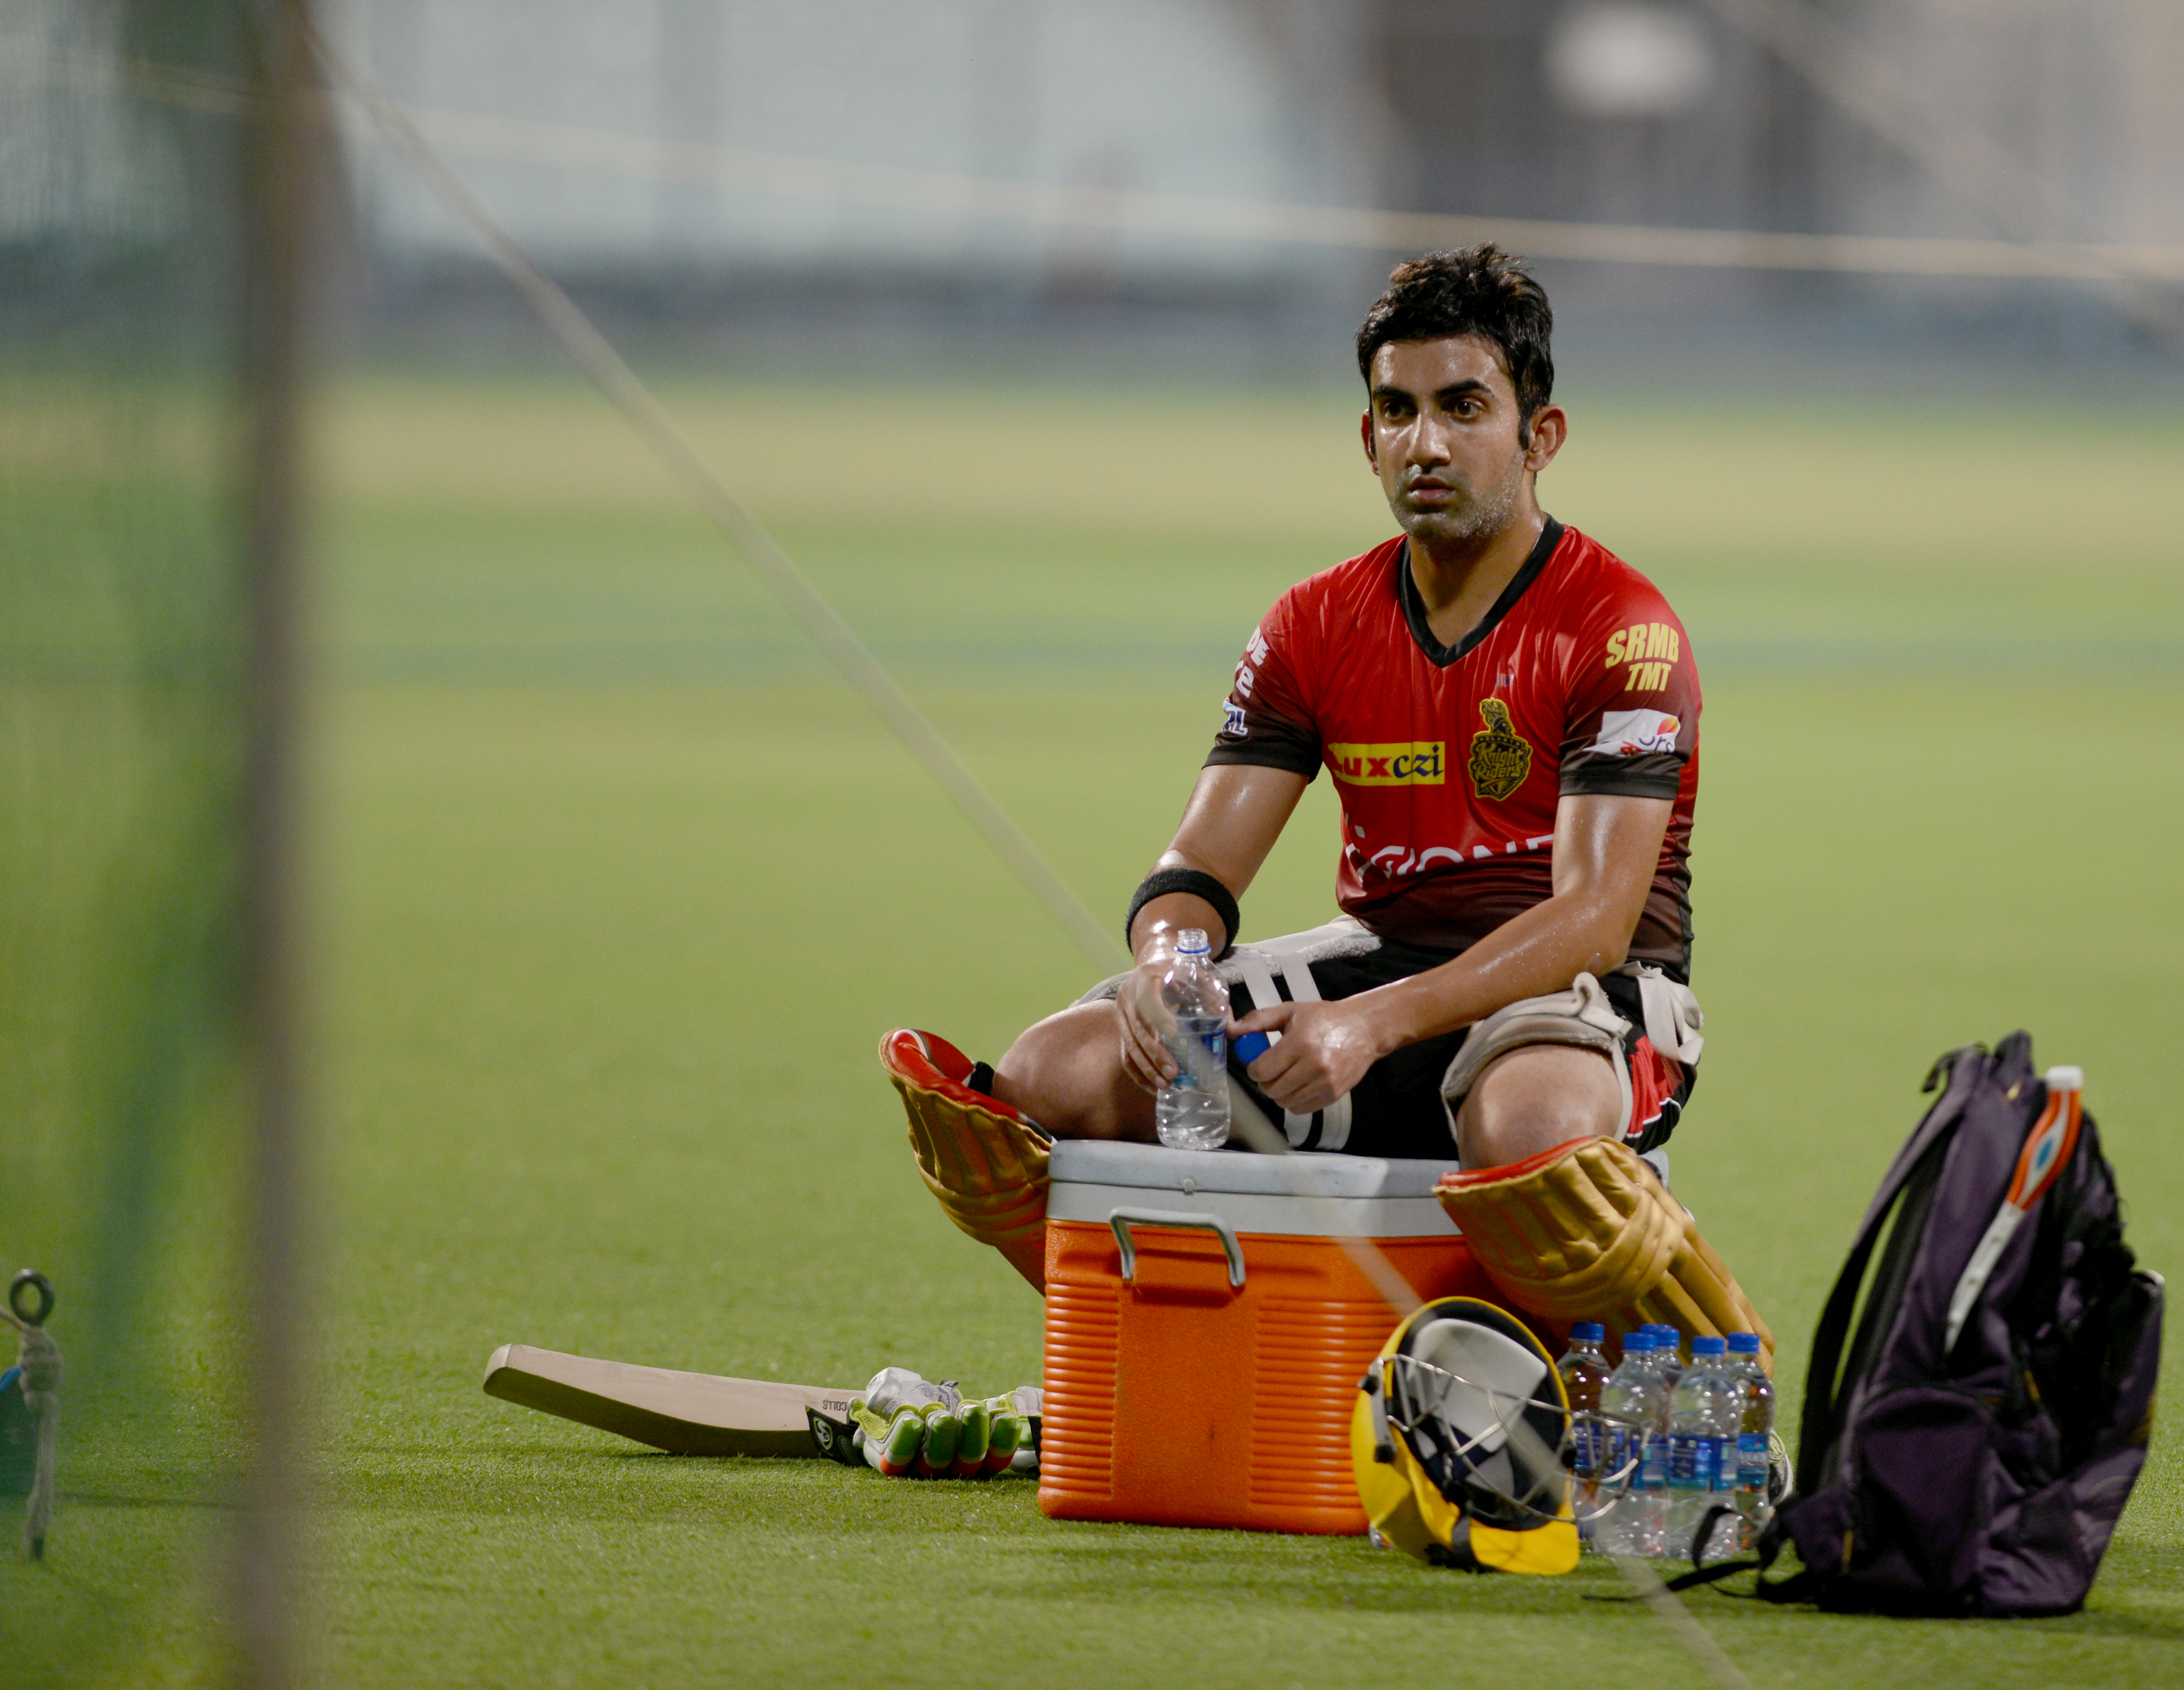 Gautam Gambhir's valuable contribution to Indian cricket in all formats will not be forgotten